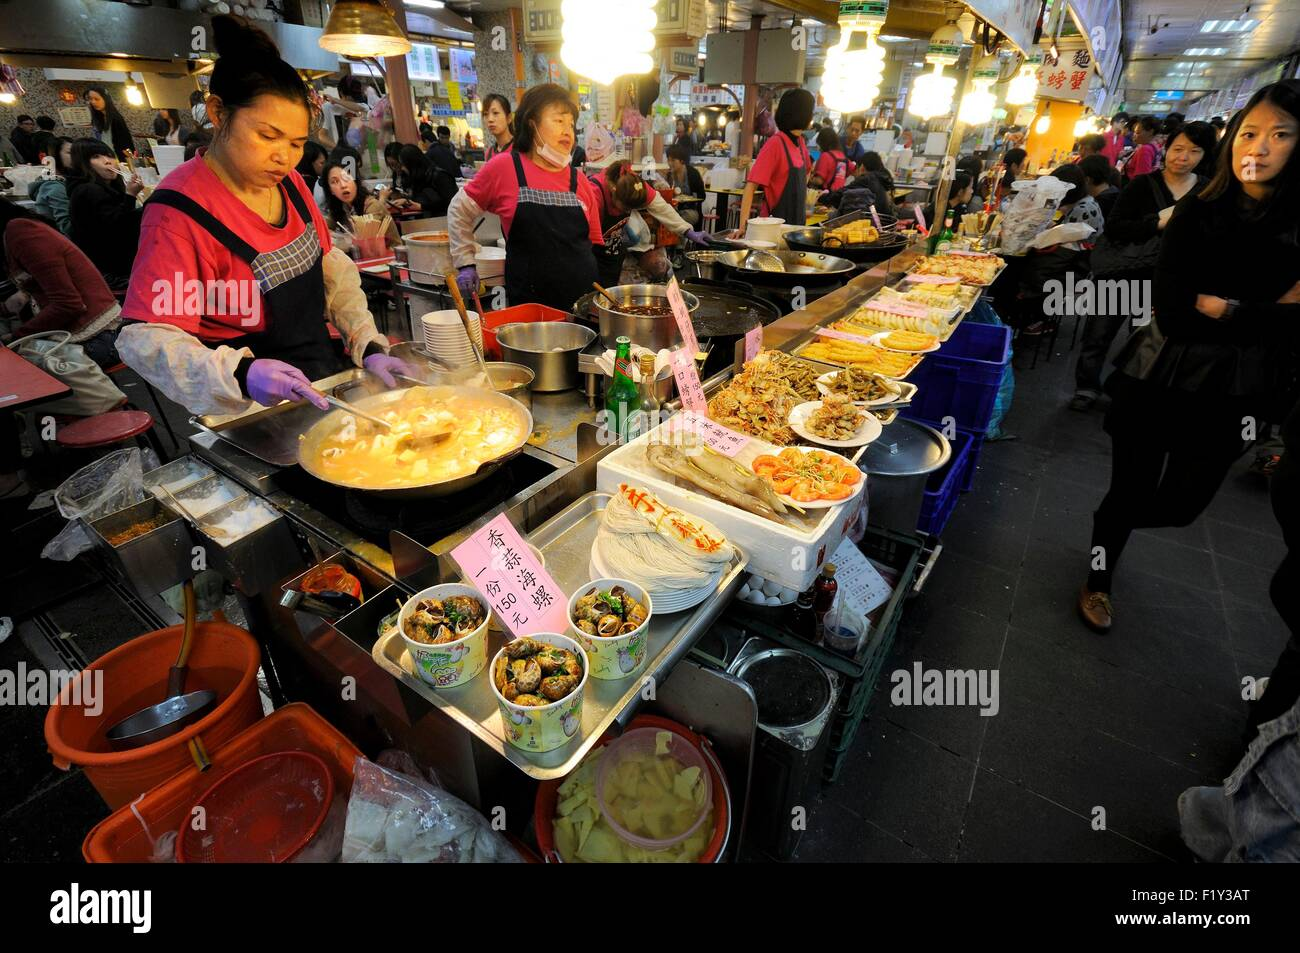 Taiwan, Taipei, Datong district, Dadaocheng, Dihua street, food court and restaurants in the large Shilin night - Stock Image